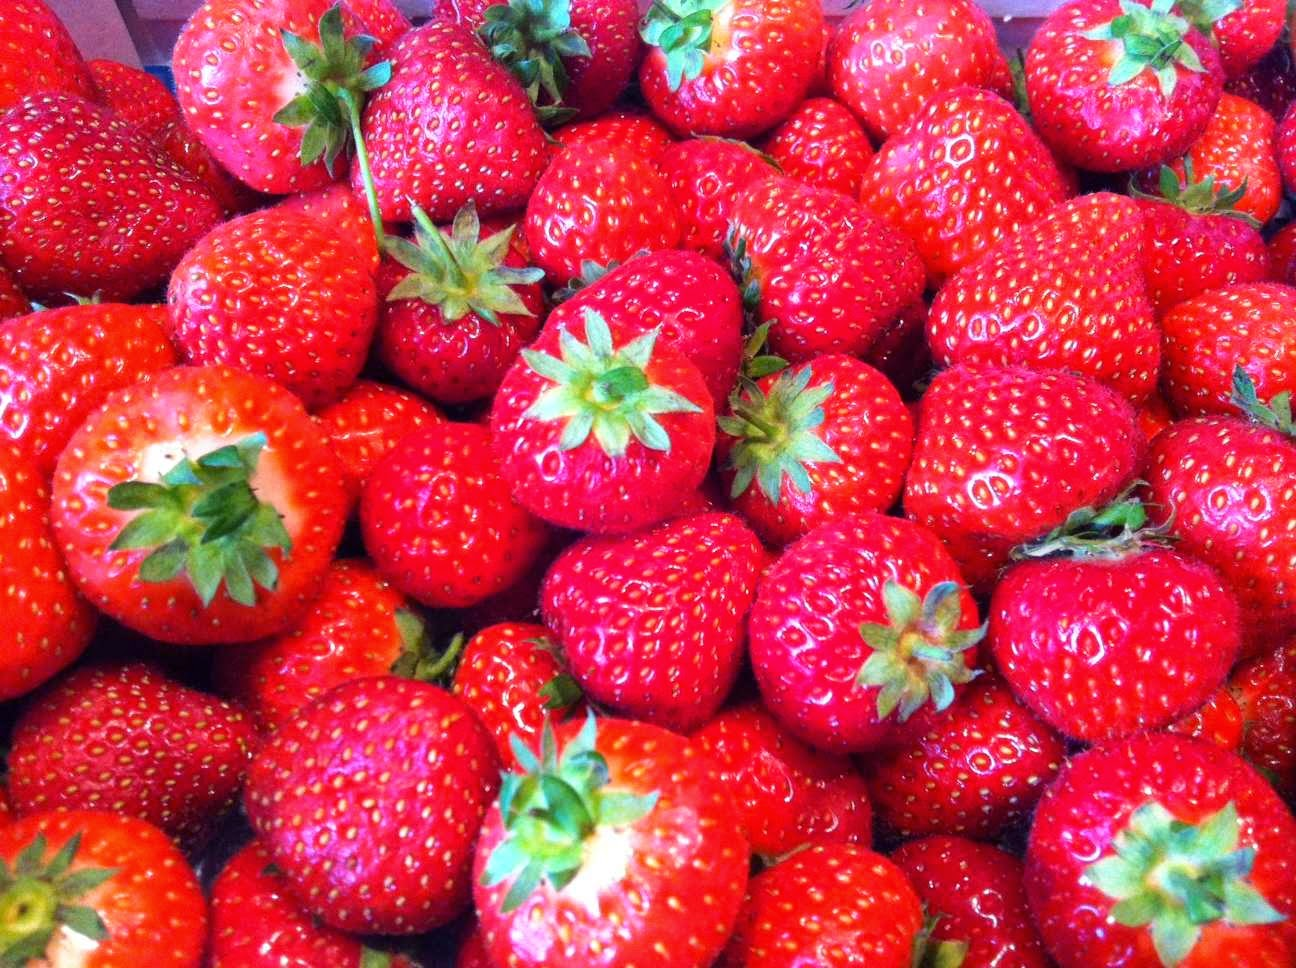 Non-climacteric fruit, such as strawberries, do not continue to ripen once picked